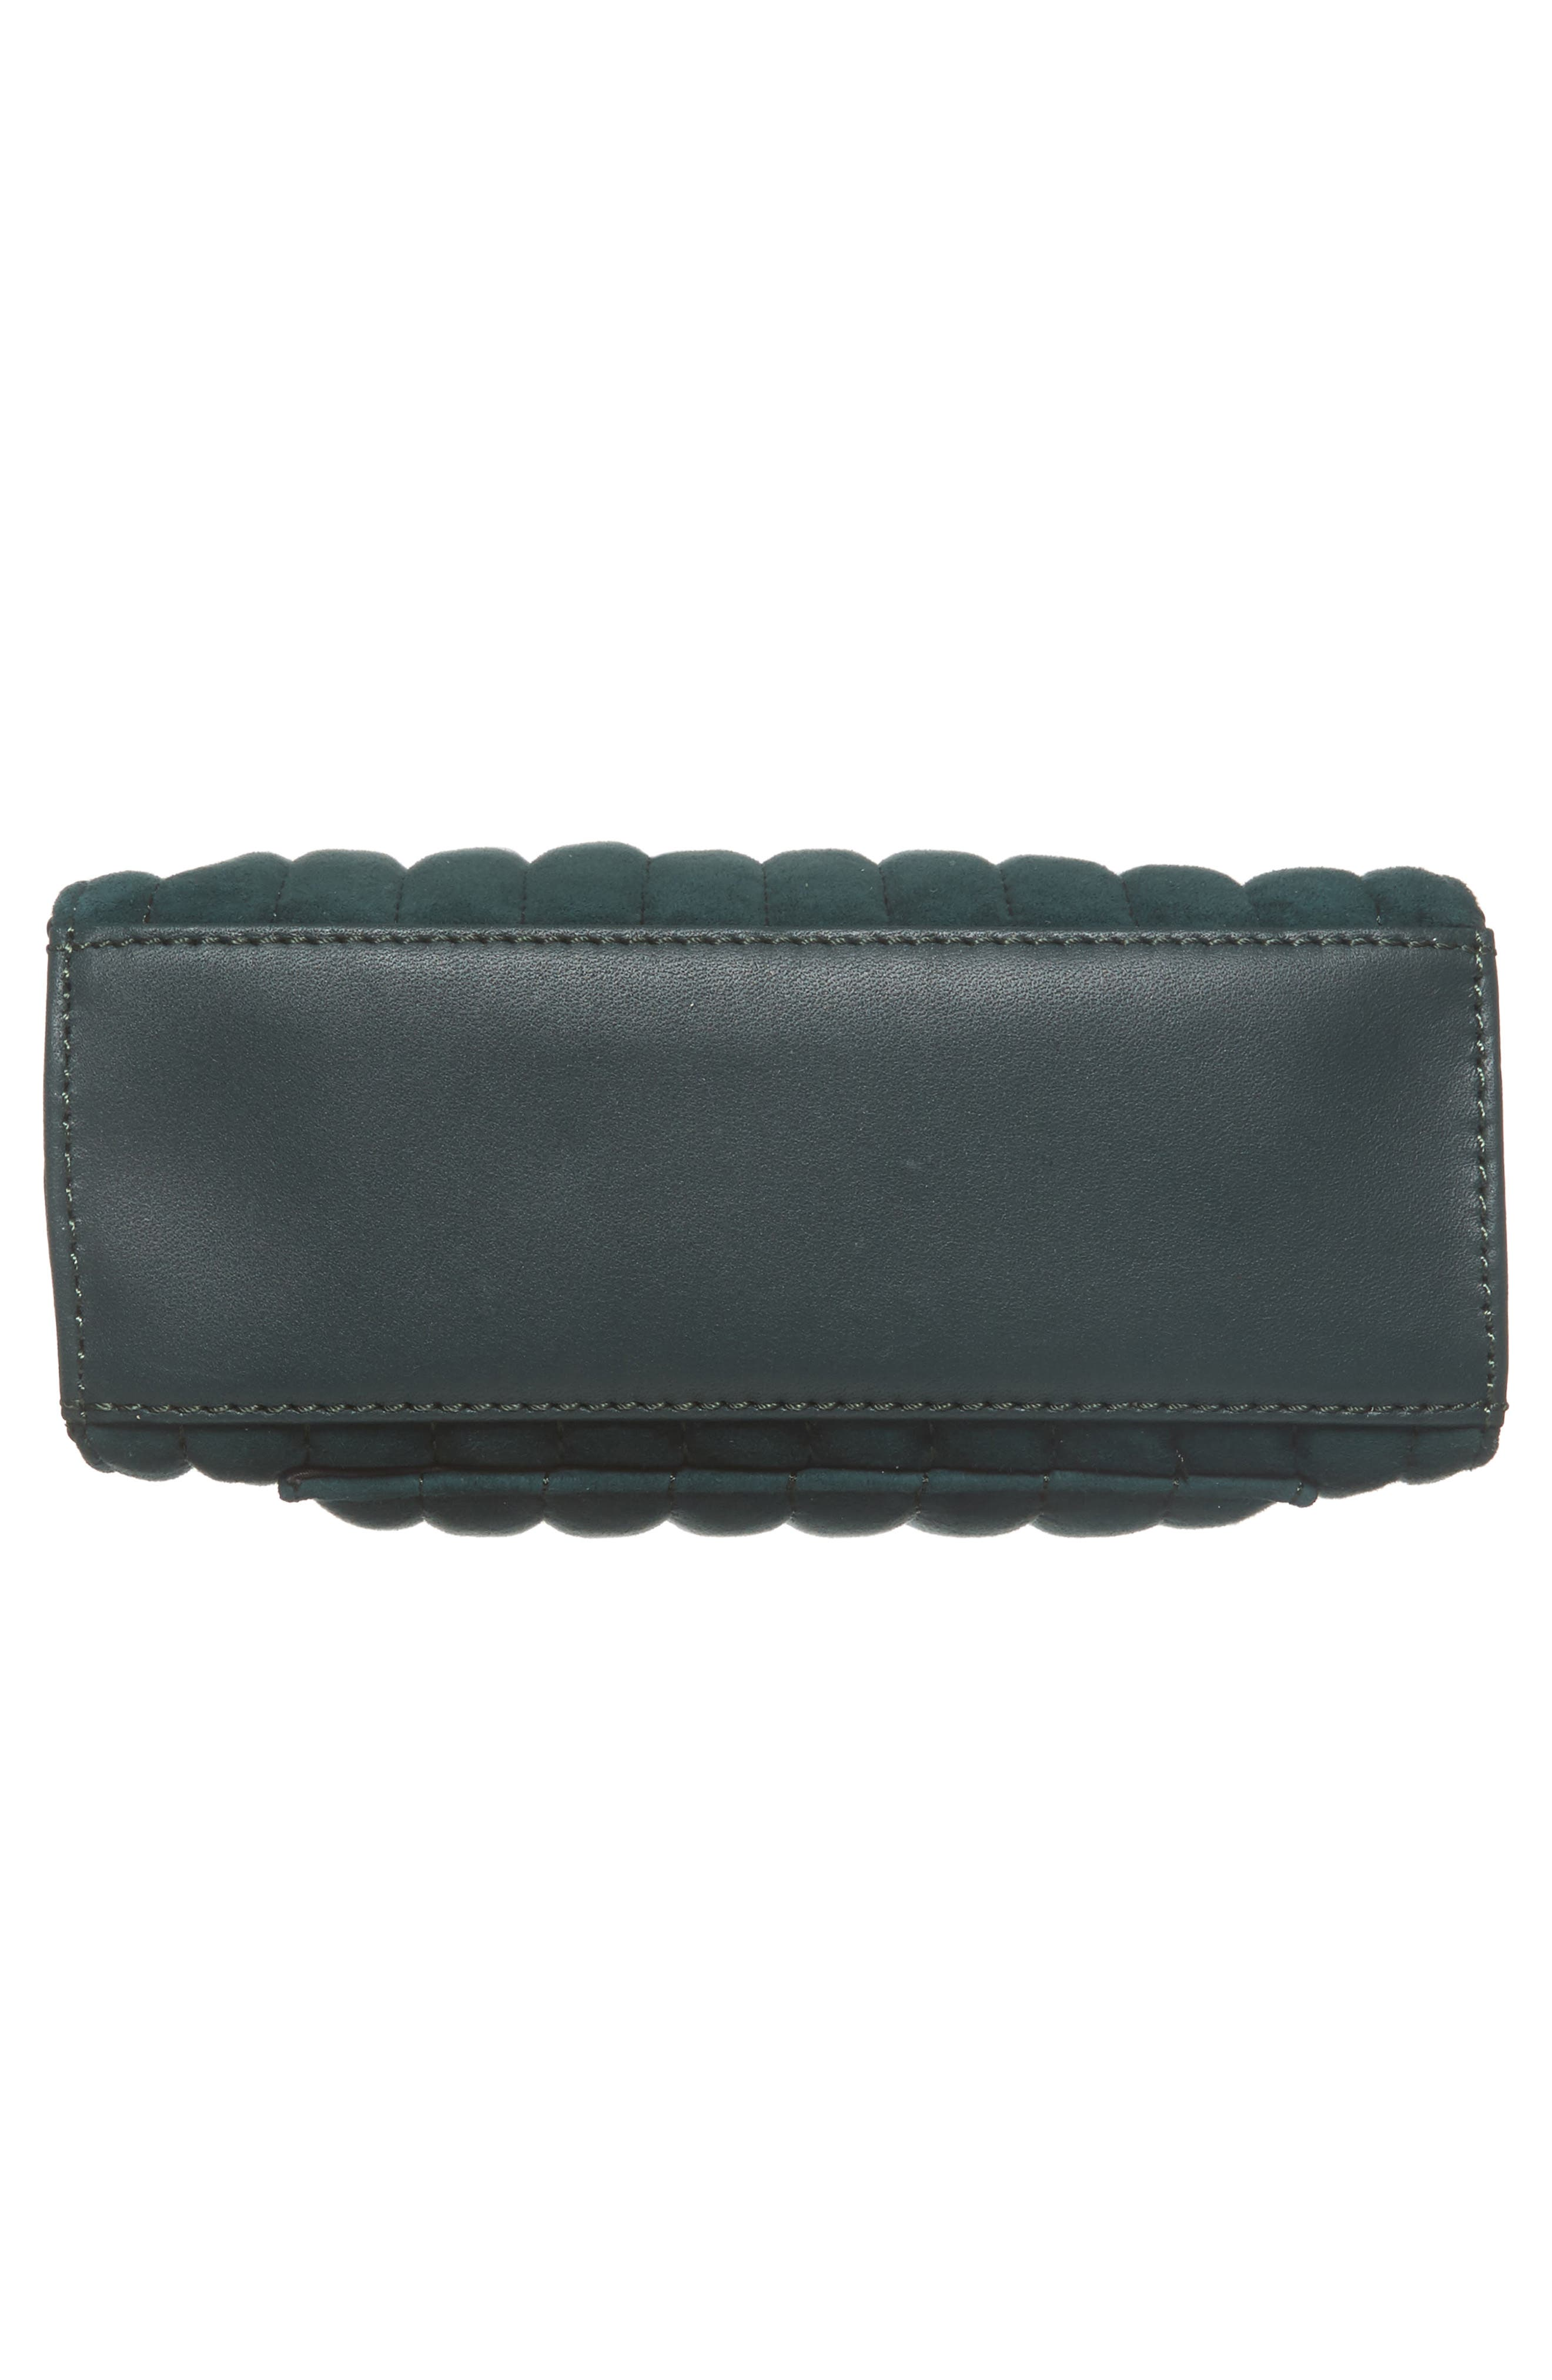 Camden Leather Crossbody Bag,                             Alternate thumbnail 6, color,                             Ink Green Quilted